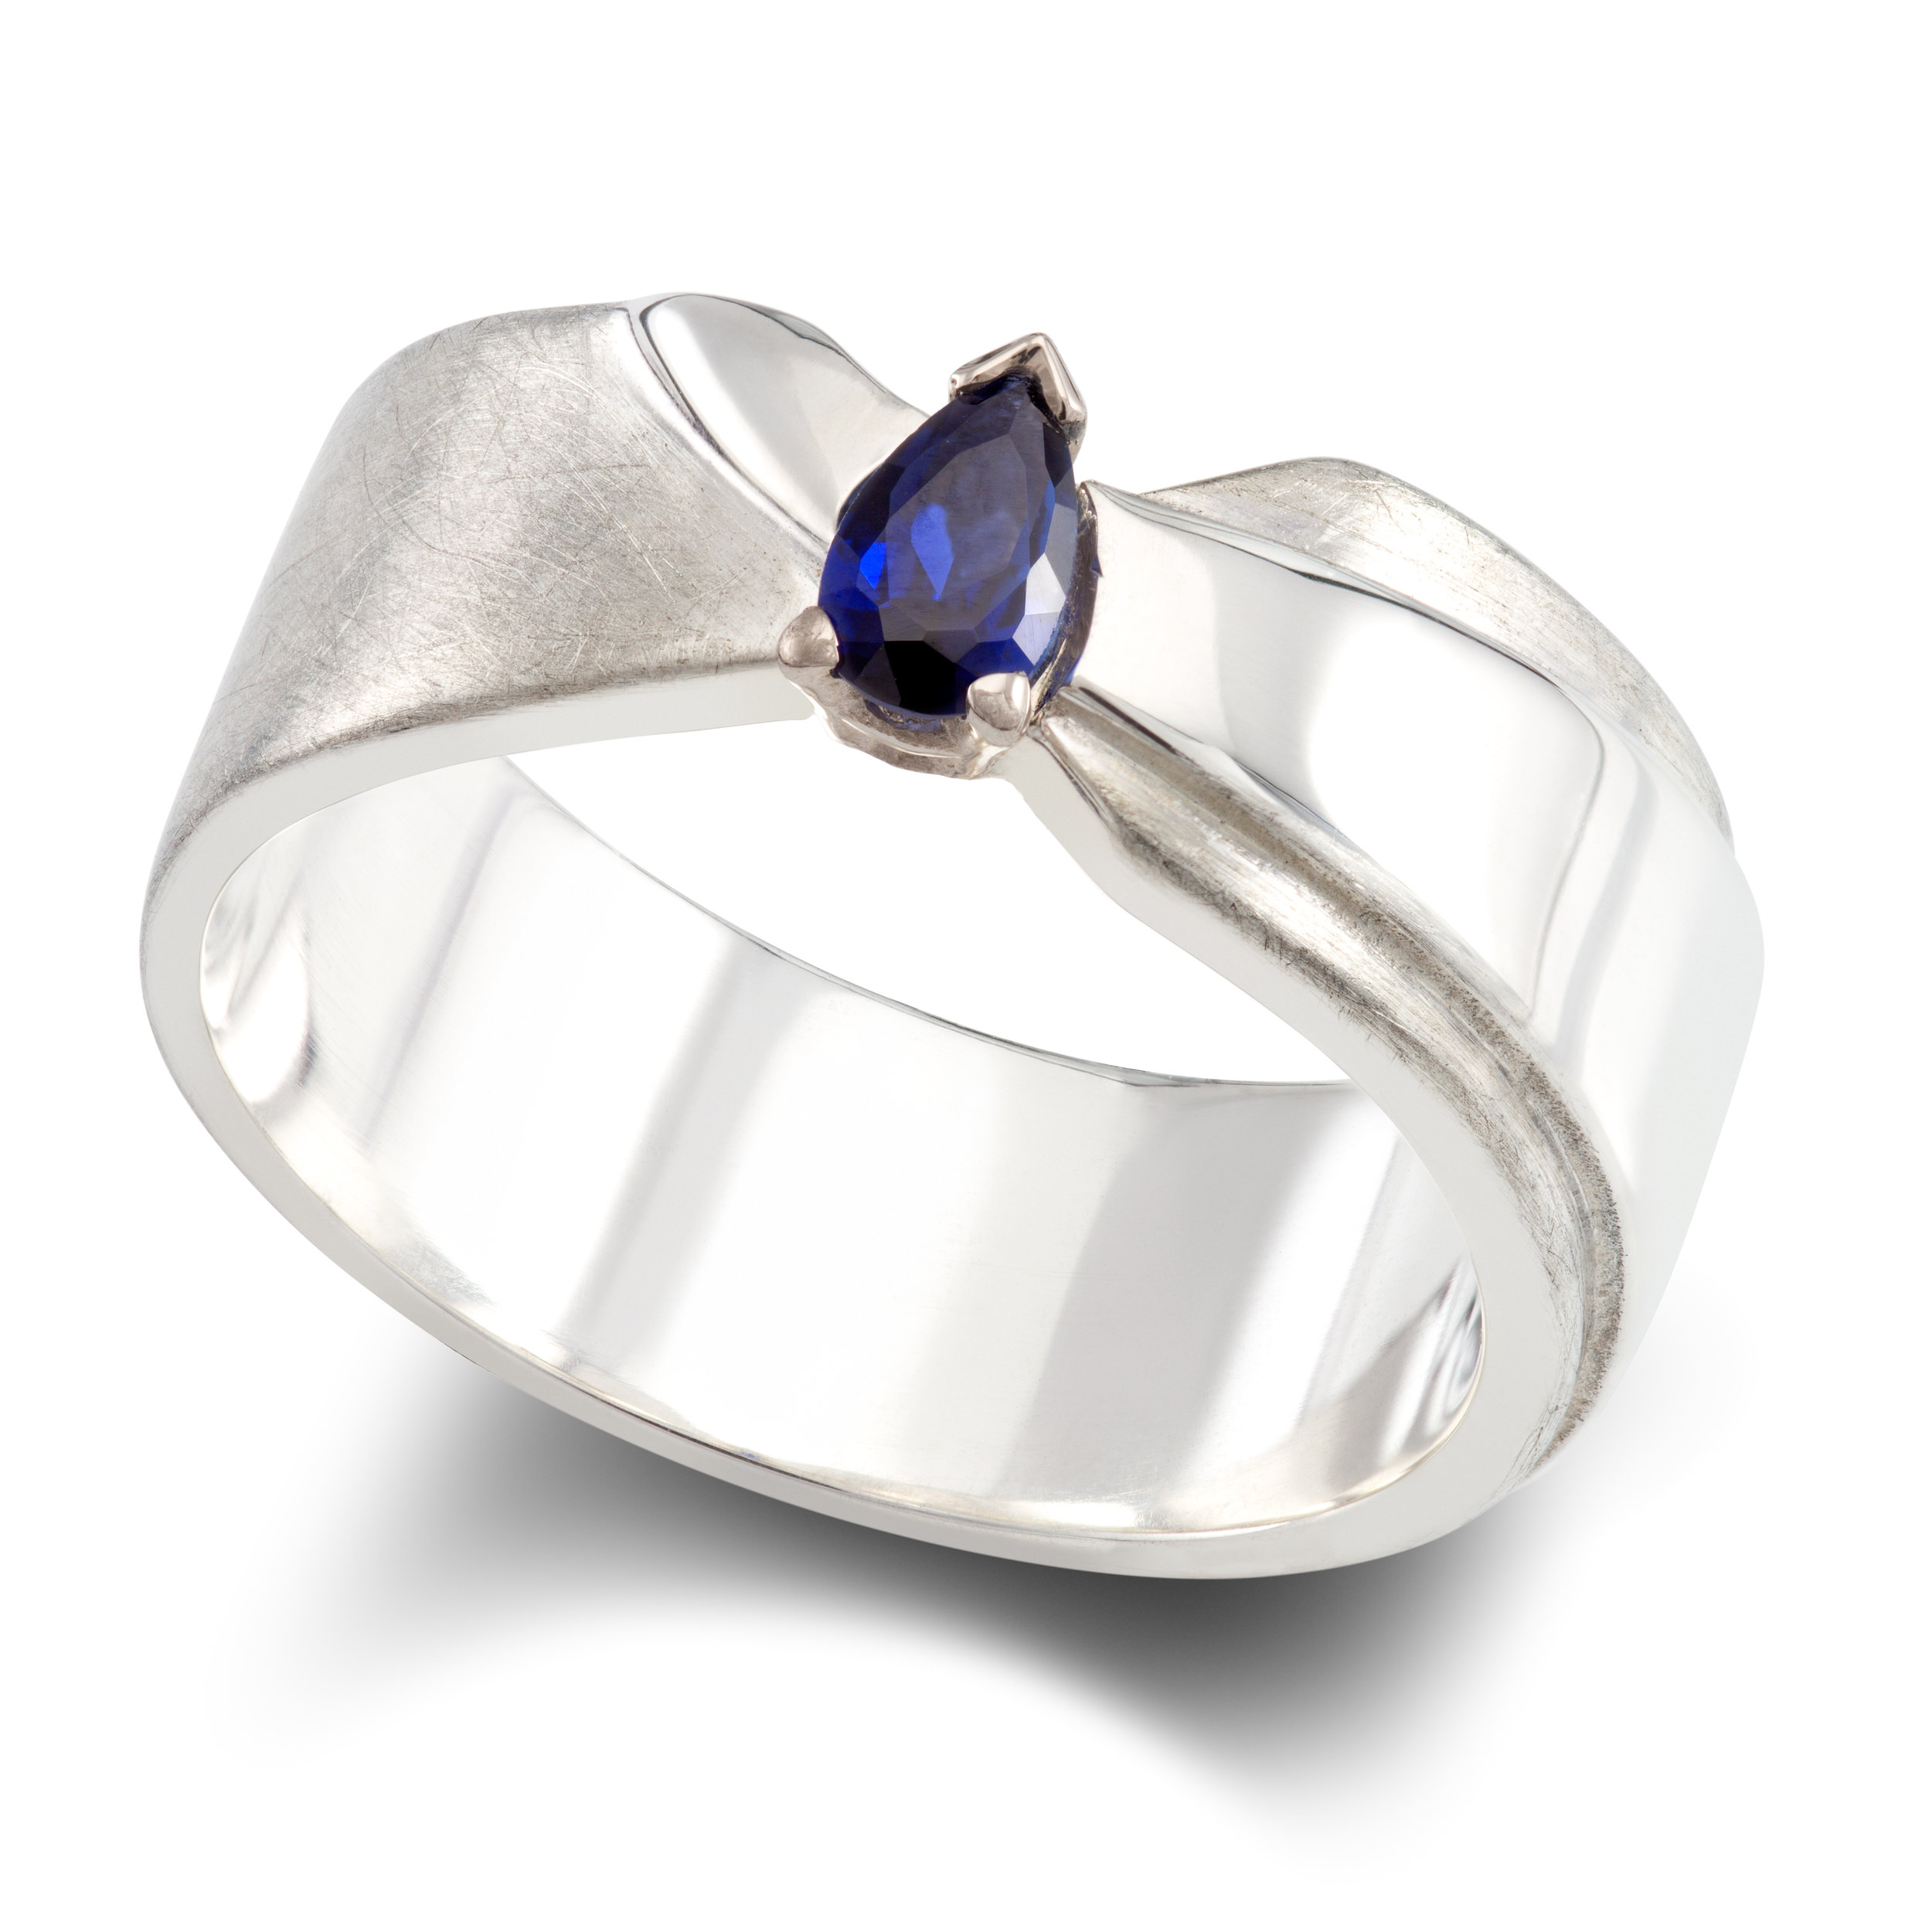 Silver dress ring set with one pear shaped lab-created sapphire in an 18ct white gold claw setting - £205